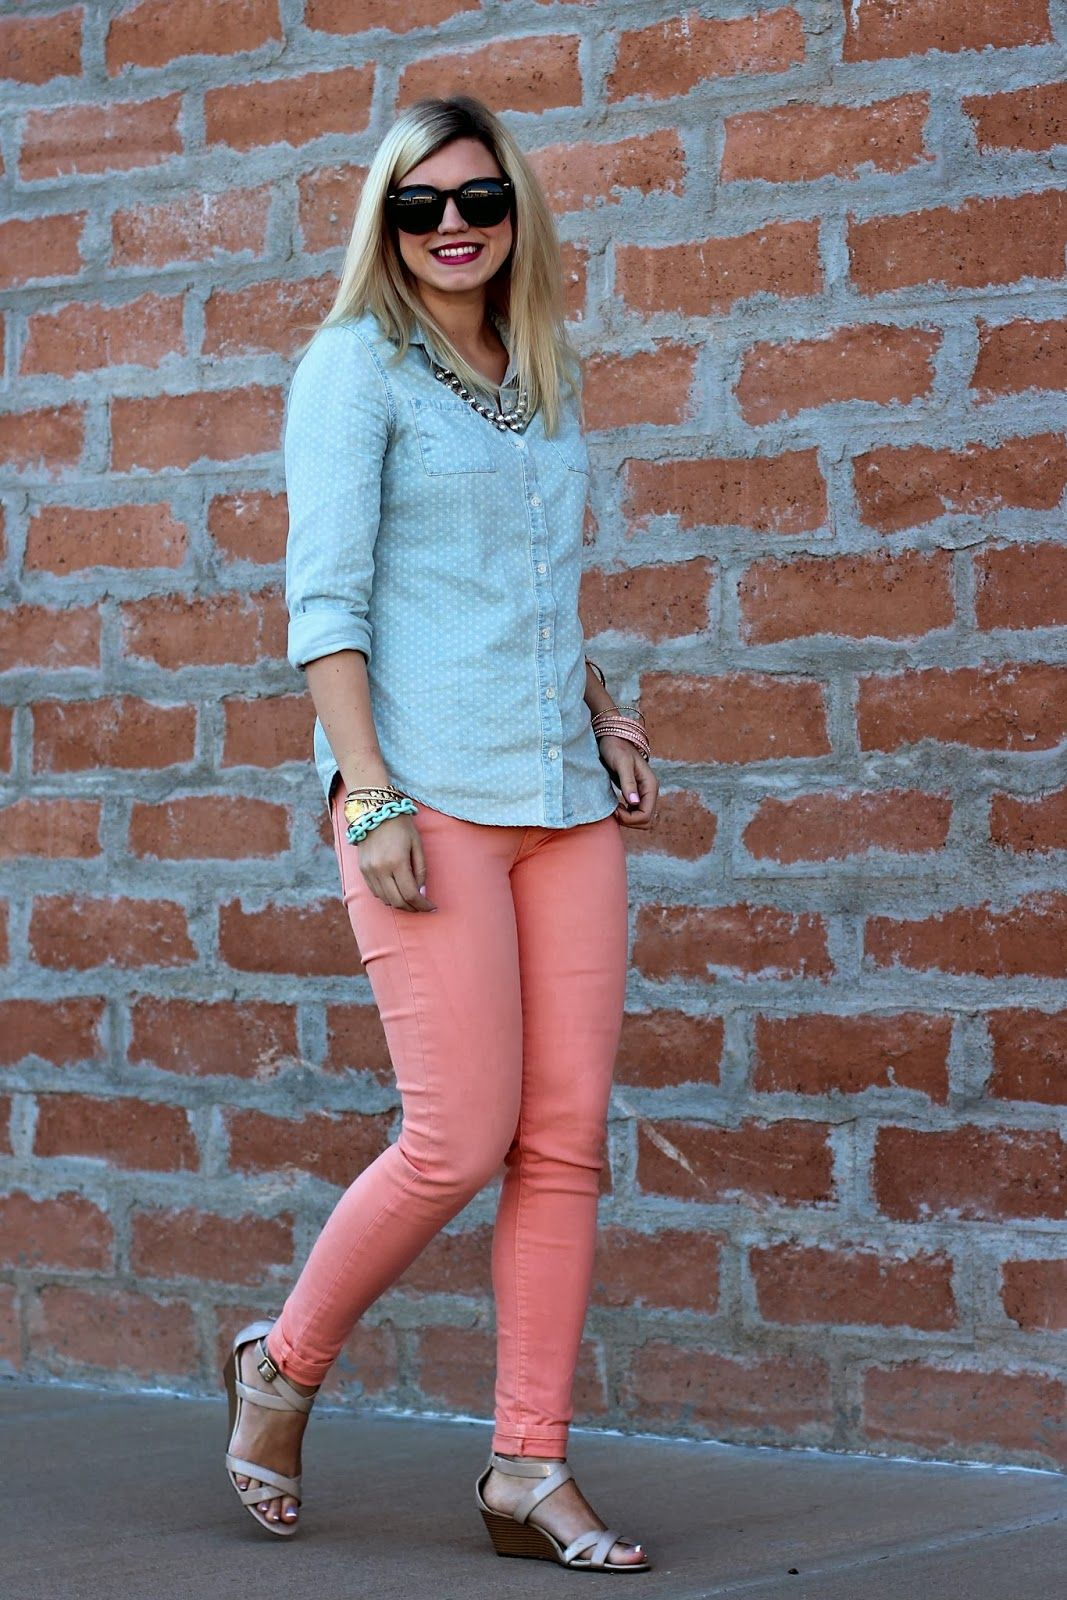 What color jeans match peach colored shirts? - Quora